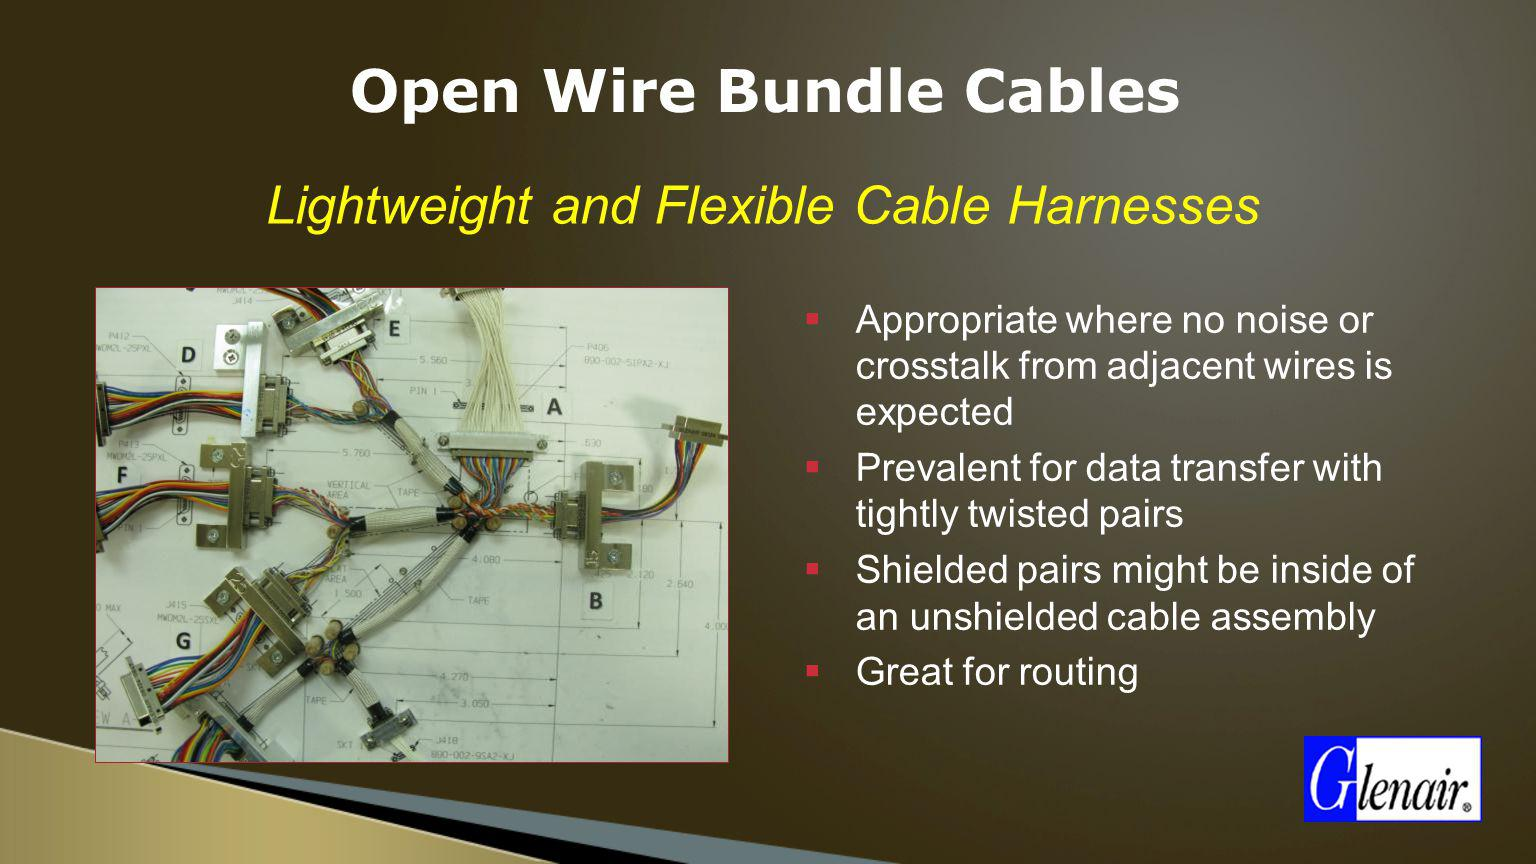 Interconnect Cable Design And Assembly Ppt Video Online Download Shielded Wire Harness Open Bundle Cables